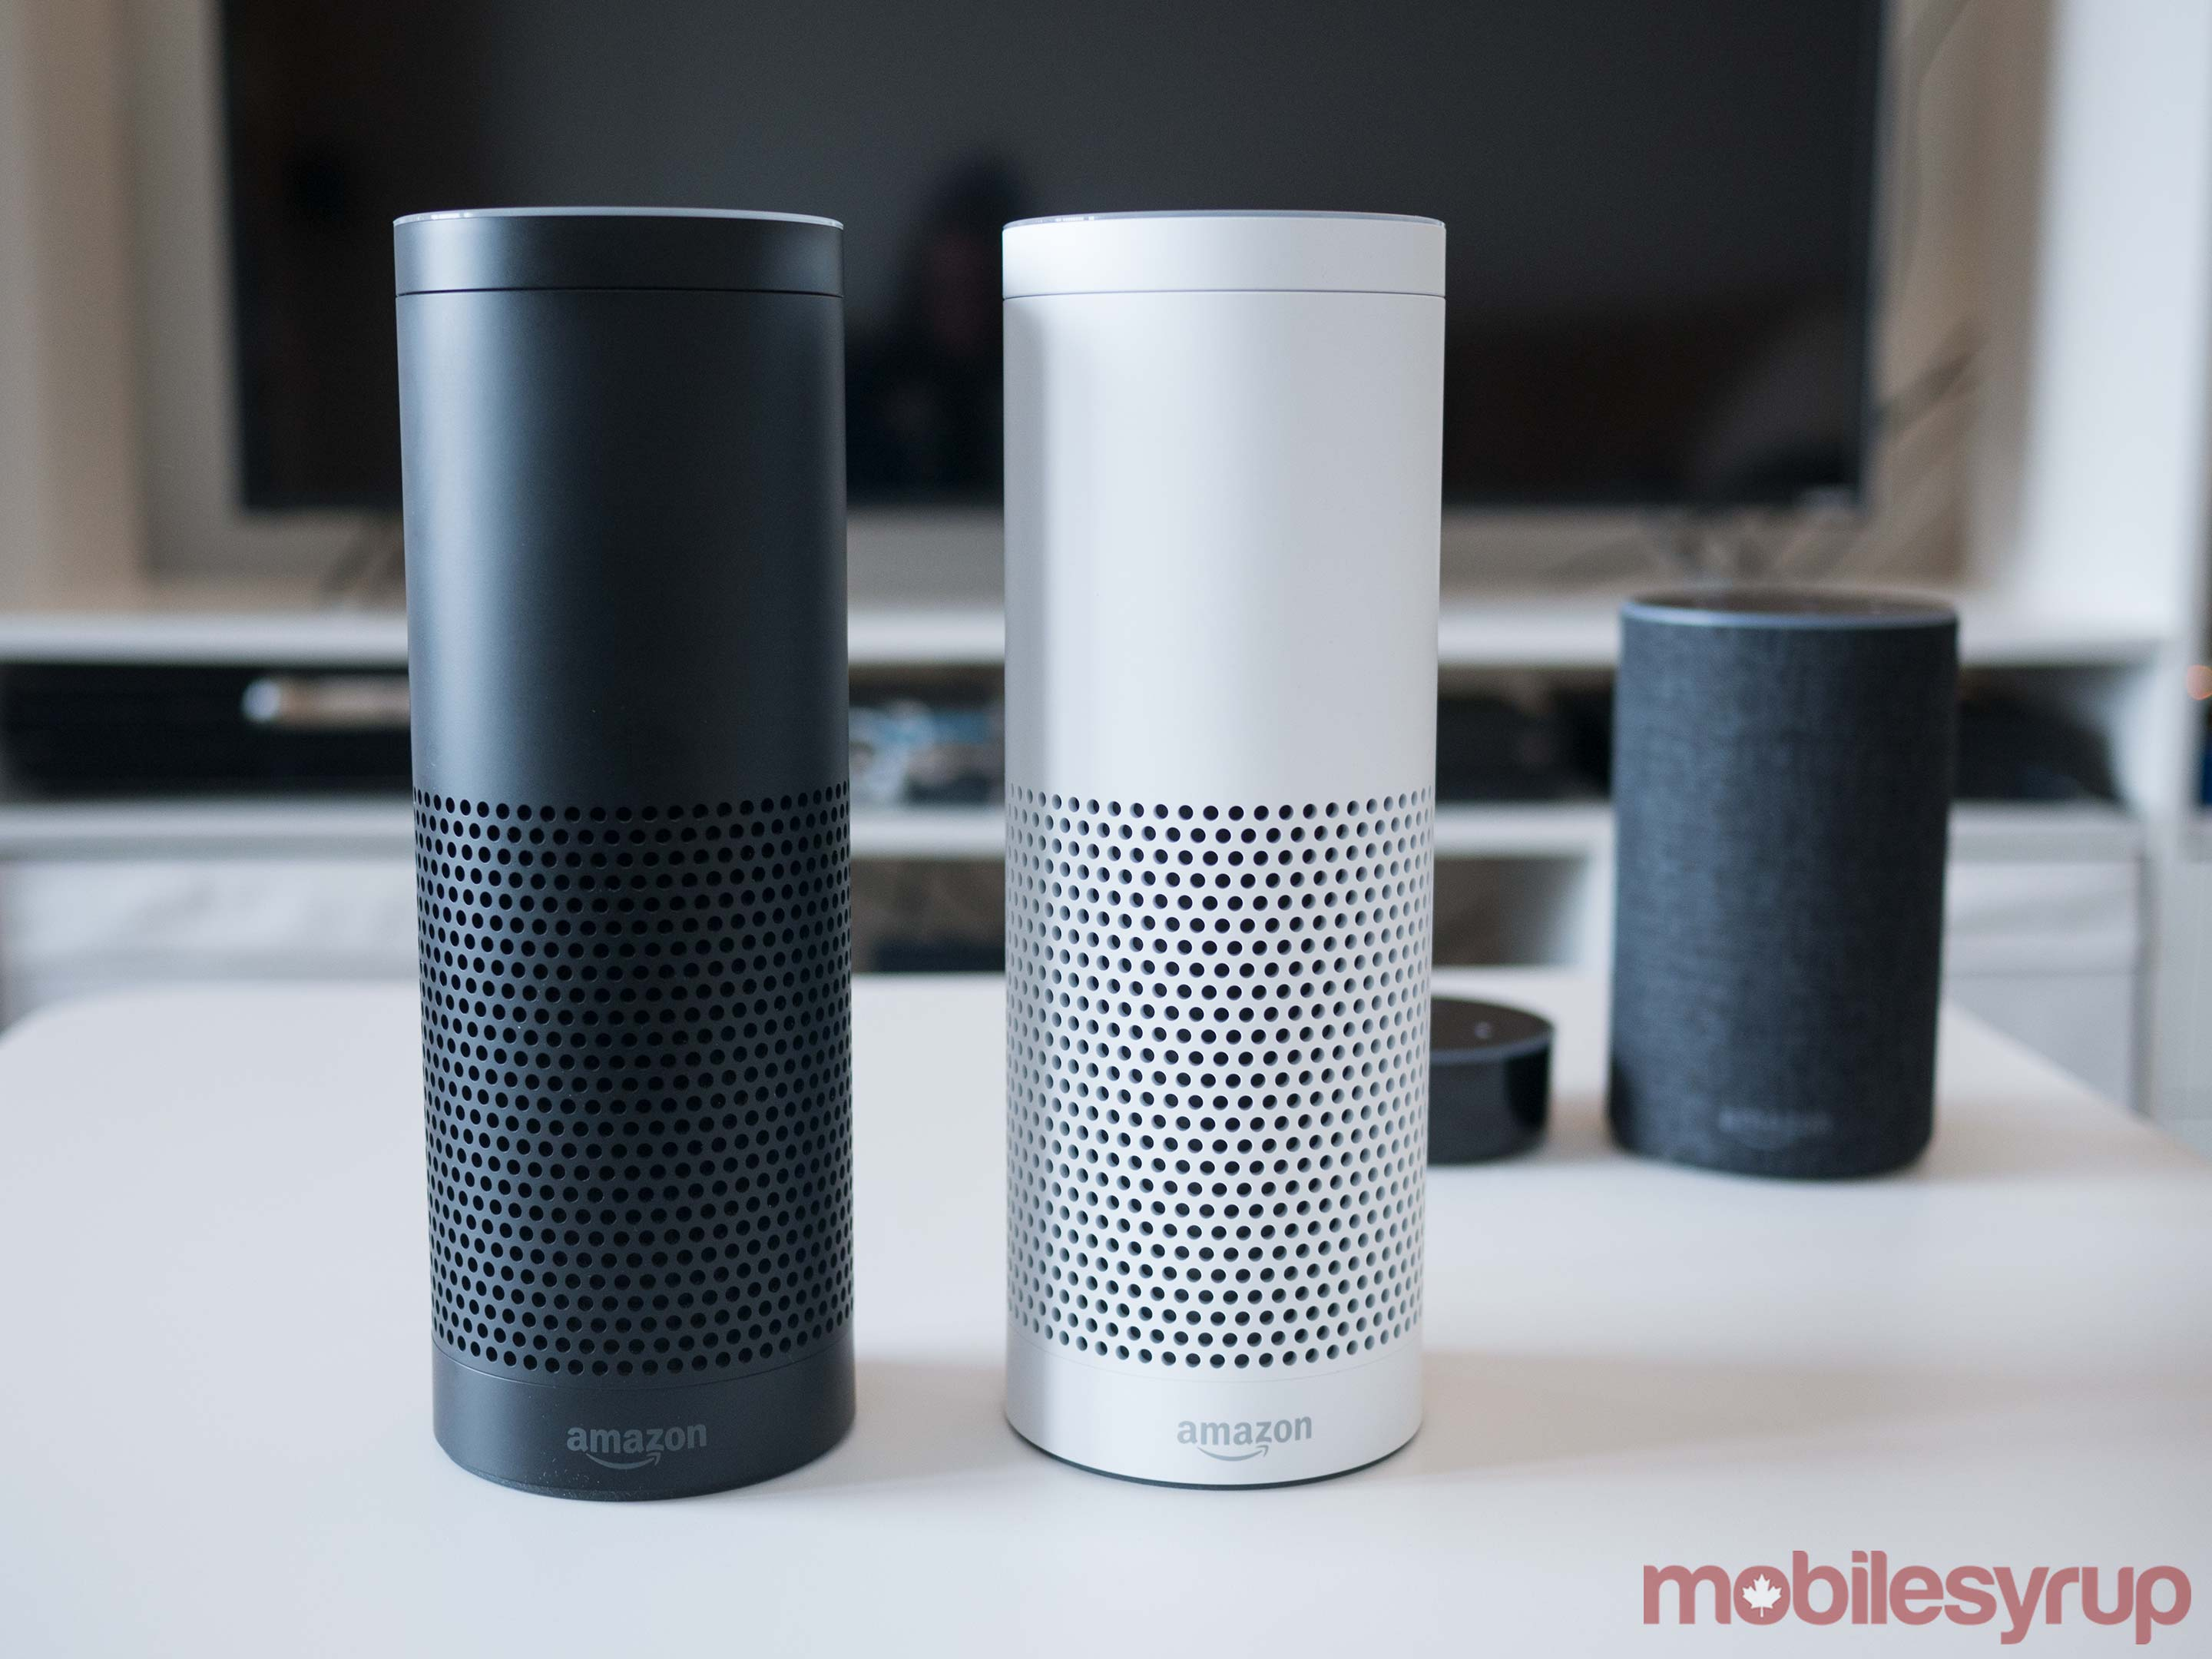 A look at Amazon's 2nd Gen Echo, Echo Plus and Echo Dot